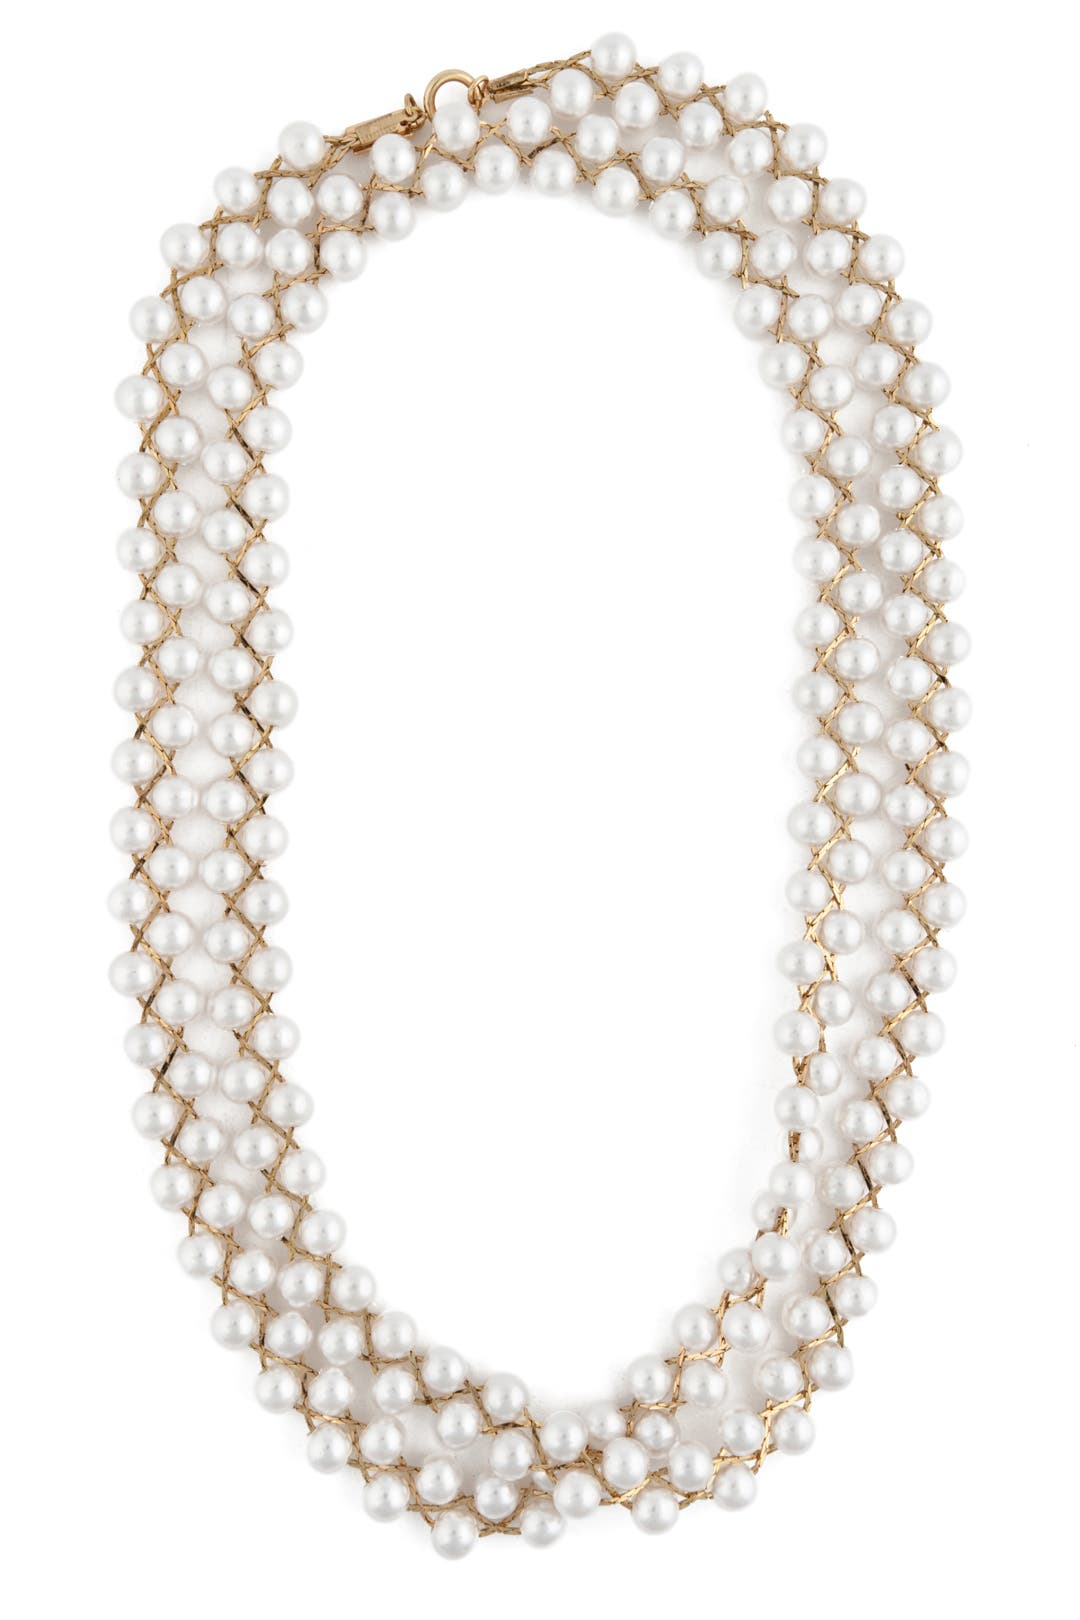 Braided Chain and Pearl Necklace by Tuleste Market